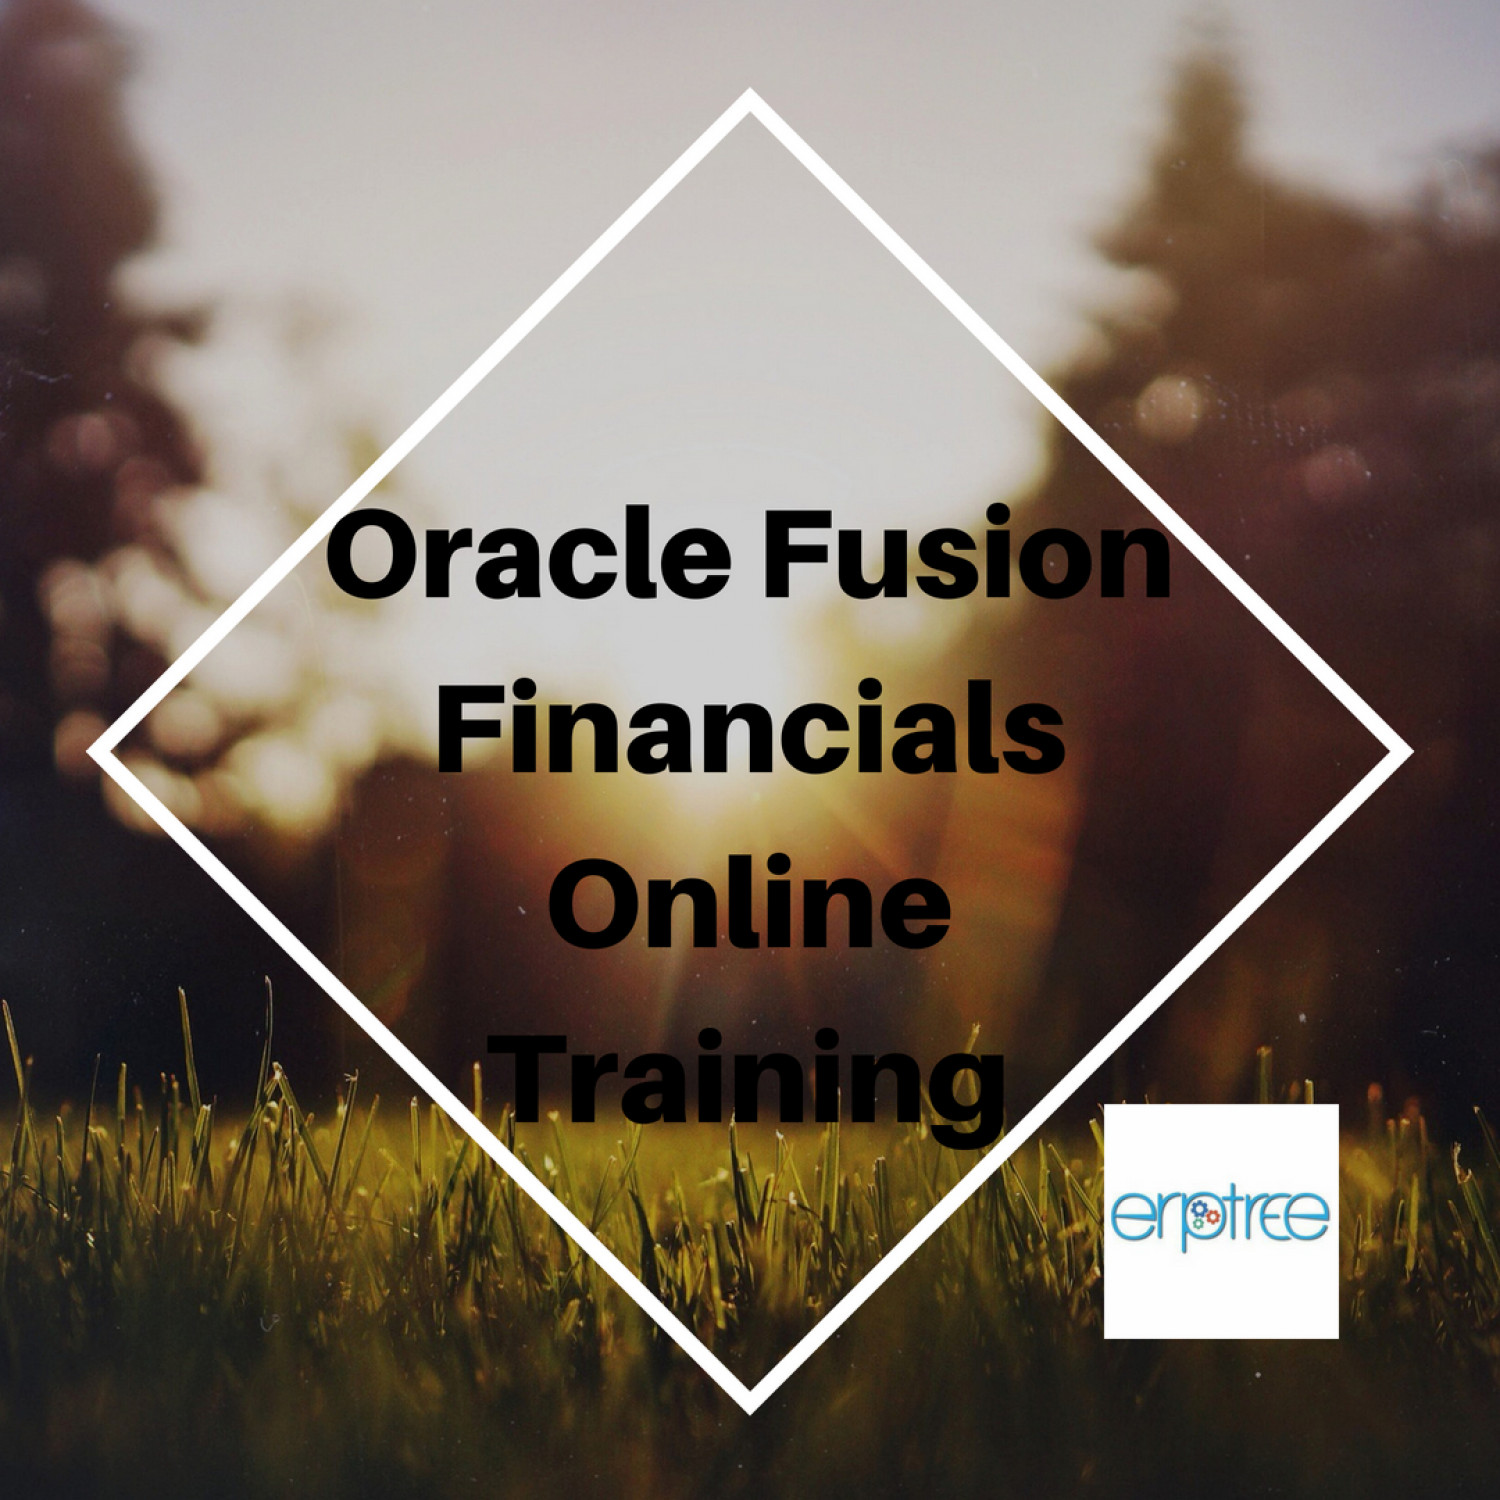 Oracle Fusion Financials Online Training Infographic